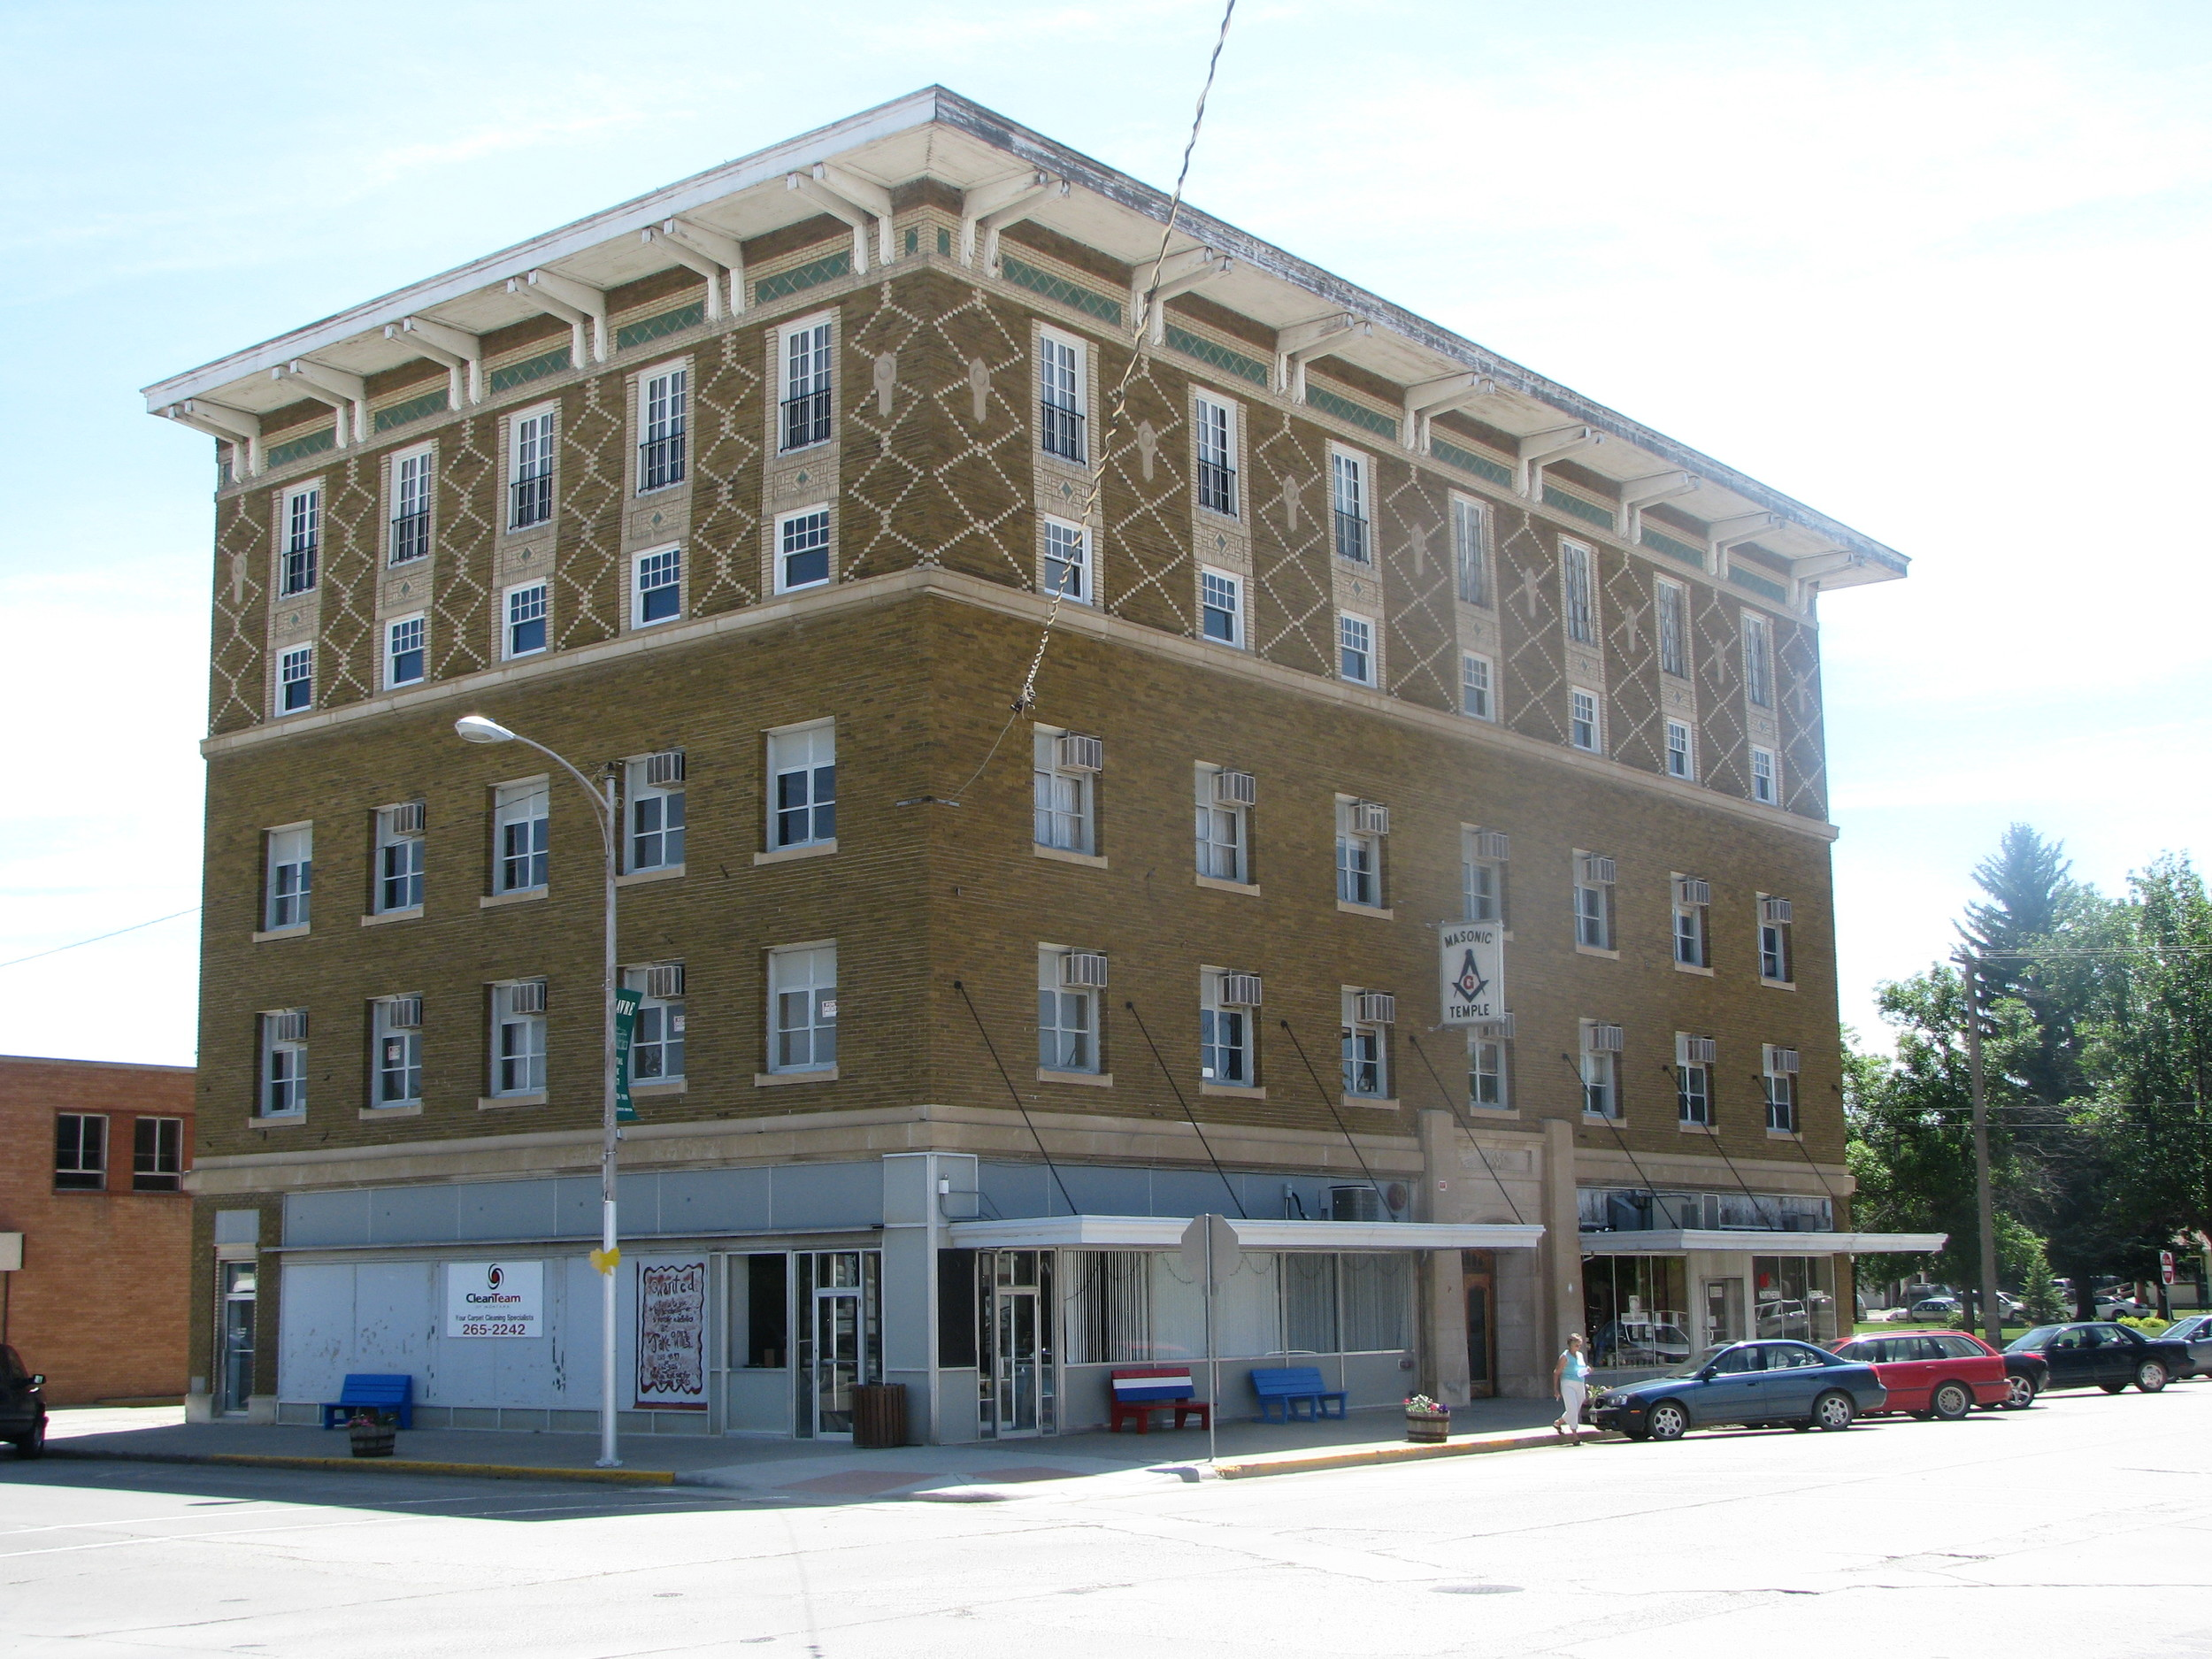 The Havre Masonic Temple is in very good hands today with preservationists Mark Whitacre and Erica Farmer of Havre. They plan to rehabilitate the building for retail, office, and meeting space.